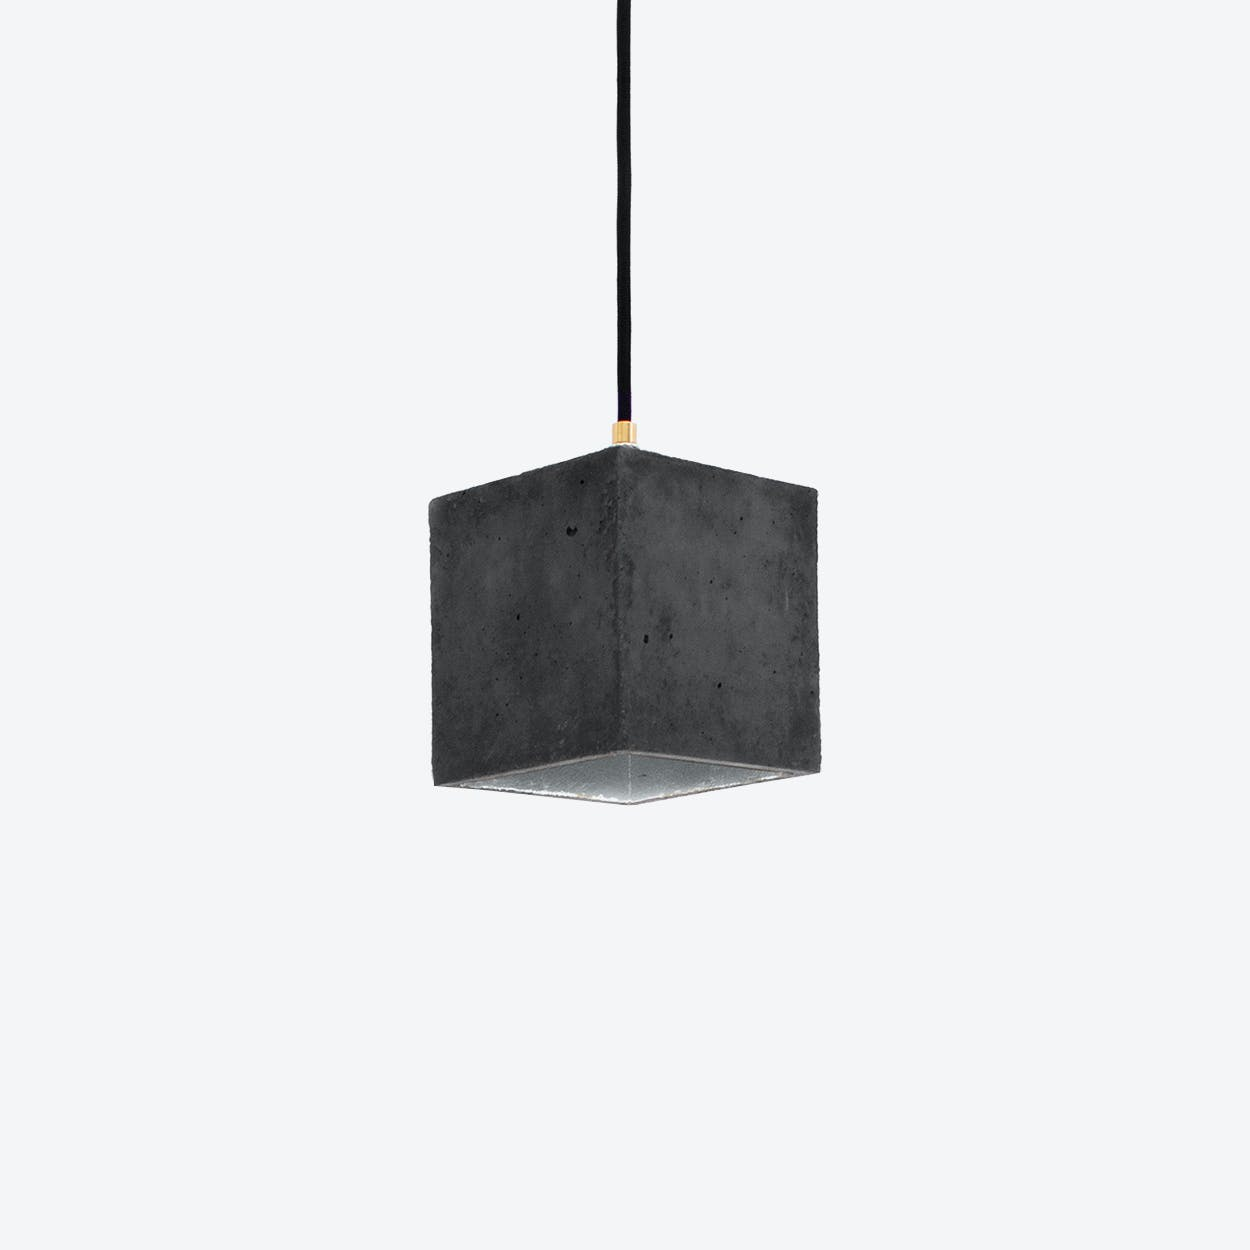 Concrete Pendant Light Cubic B1 in Dark Grey and Silver